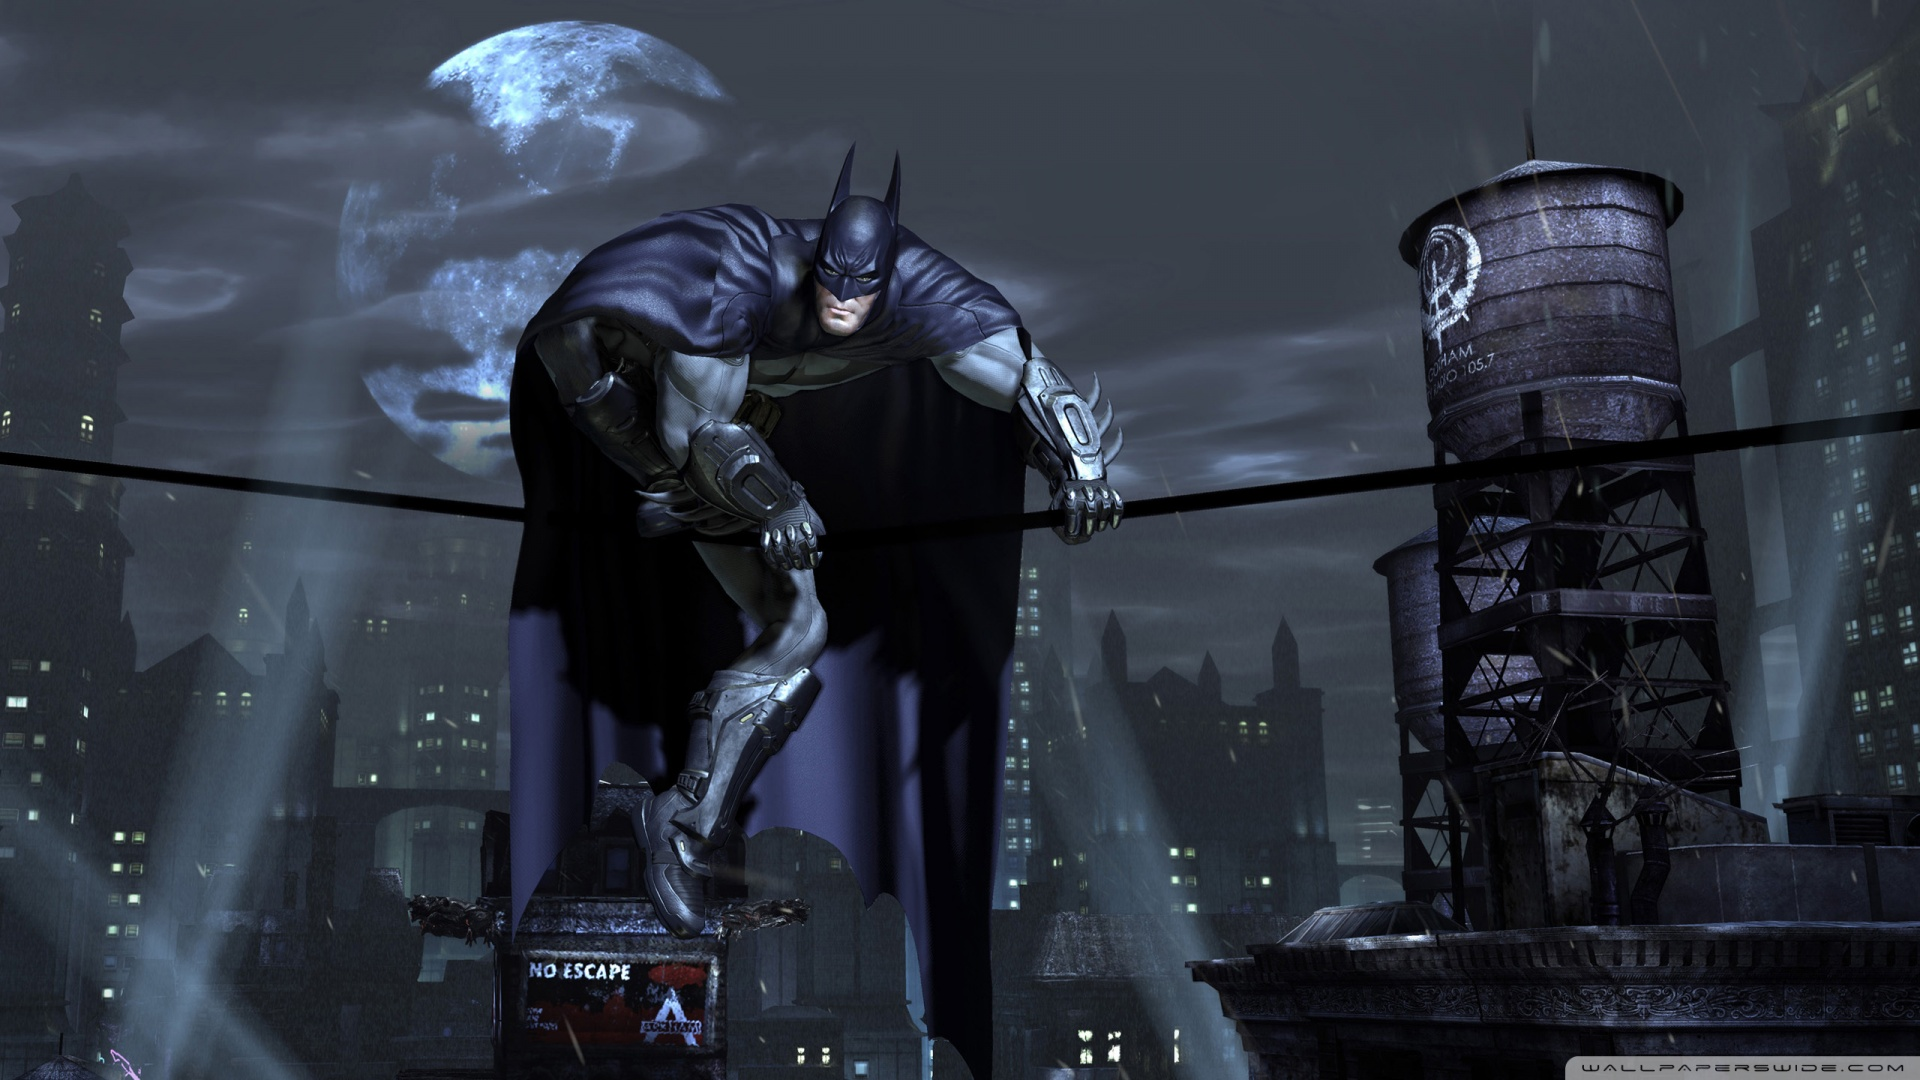 Batman Arkham City 2 Wallpaper 1920x1080 Batman Arkham City 2 1920x1080